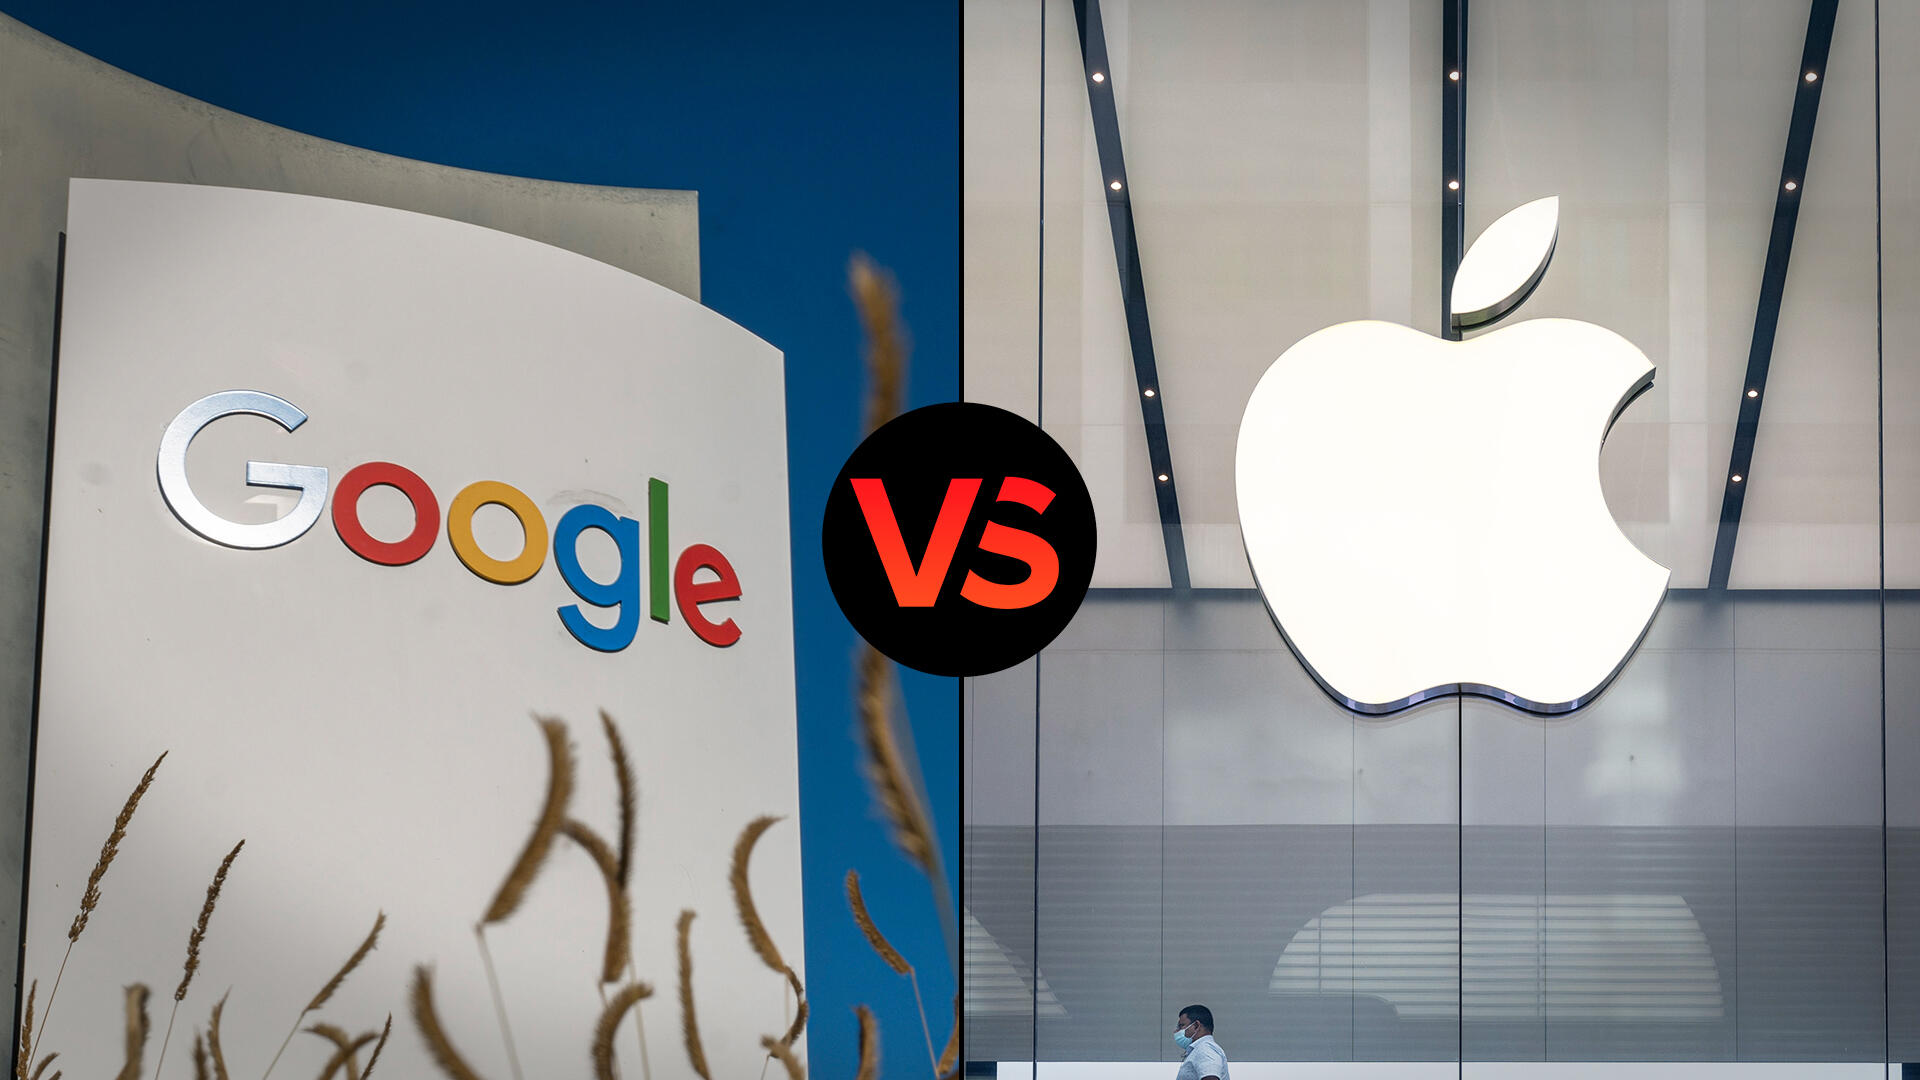 Video: Why Apple doesn't get along with Google